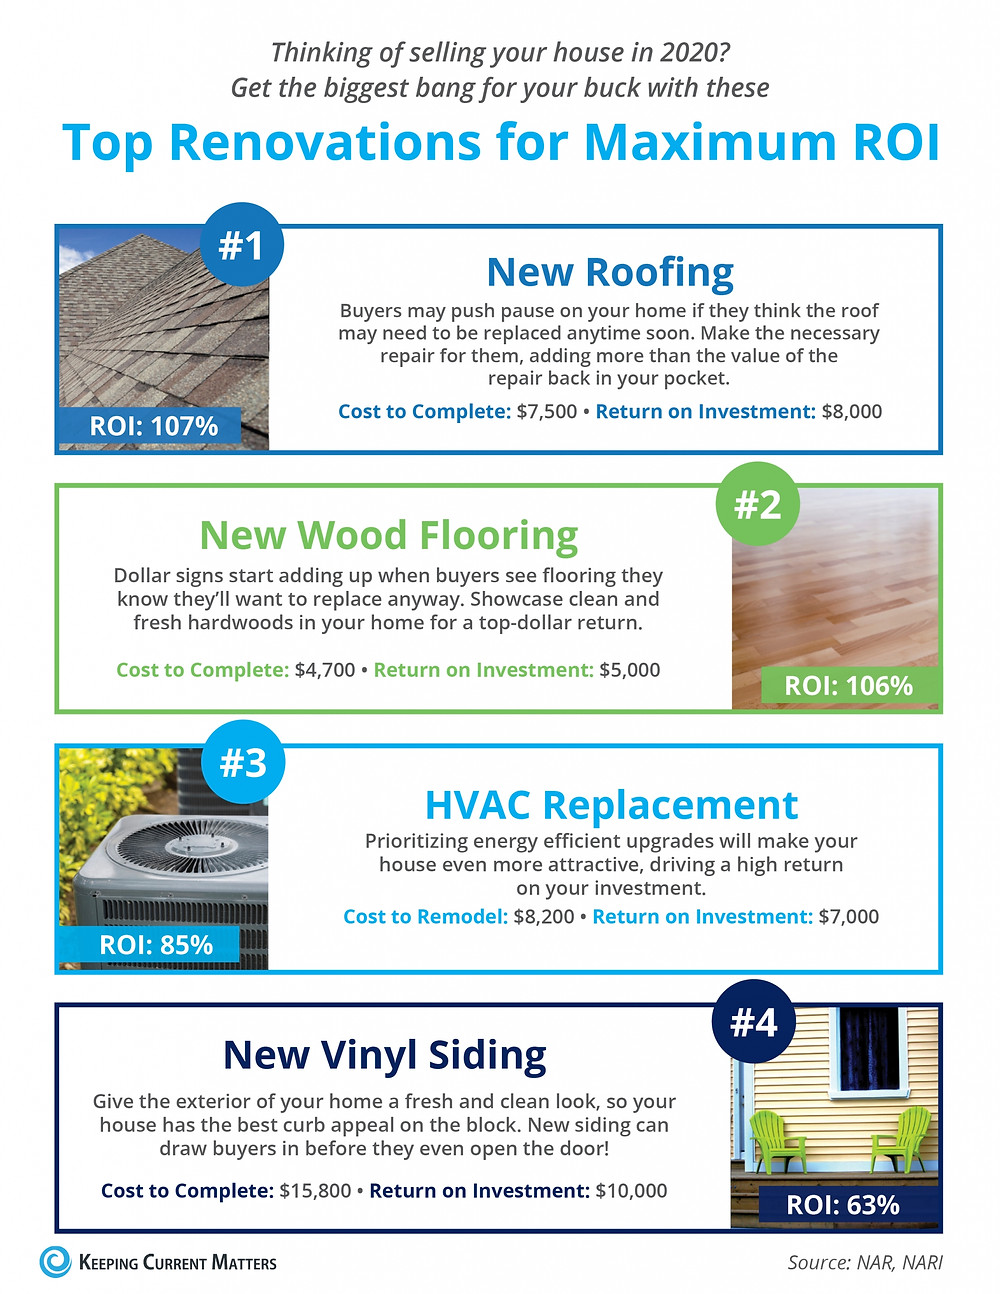 Top Renovations for Maximum ROI [INFOGRAPHIC] | Keeping Current Matters